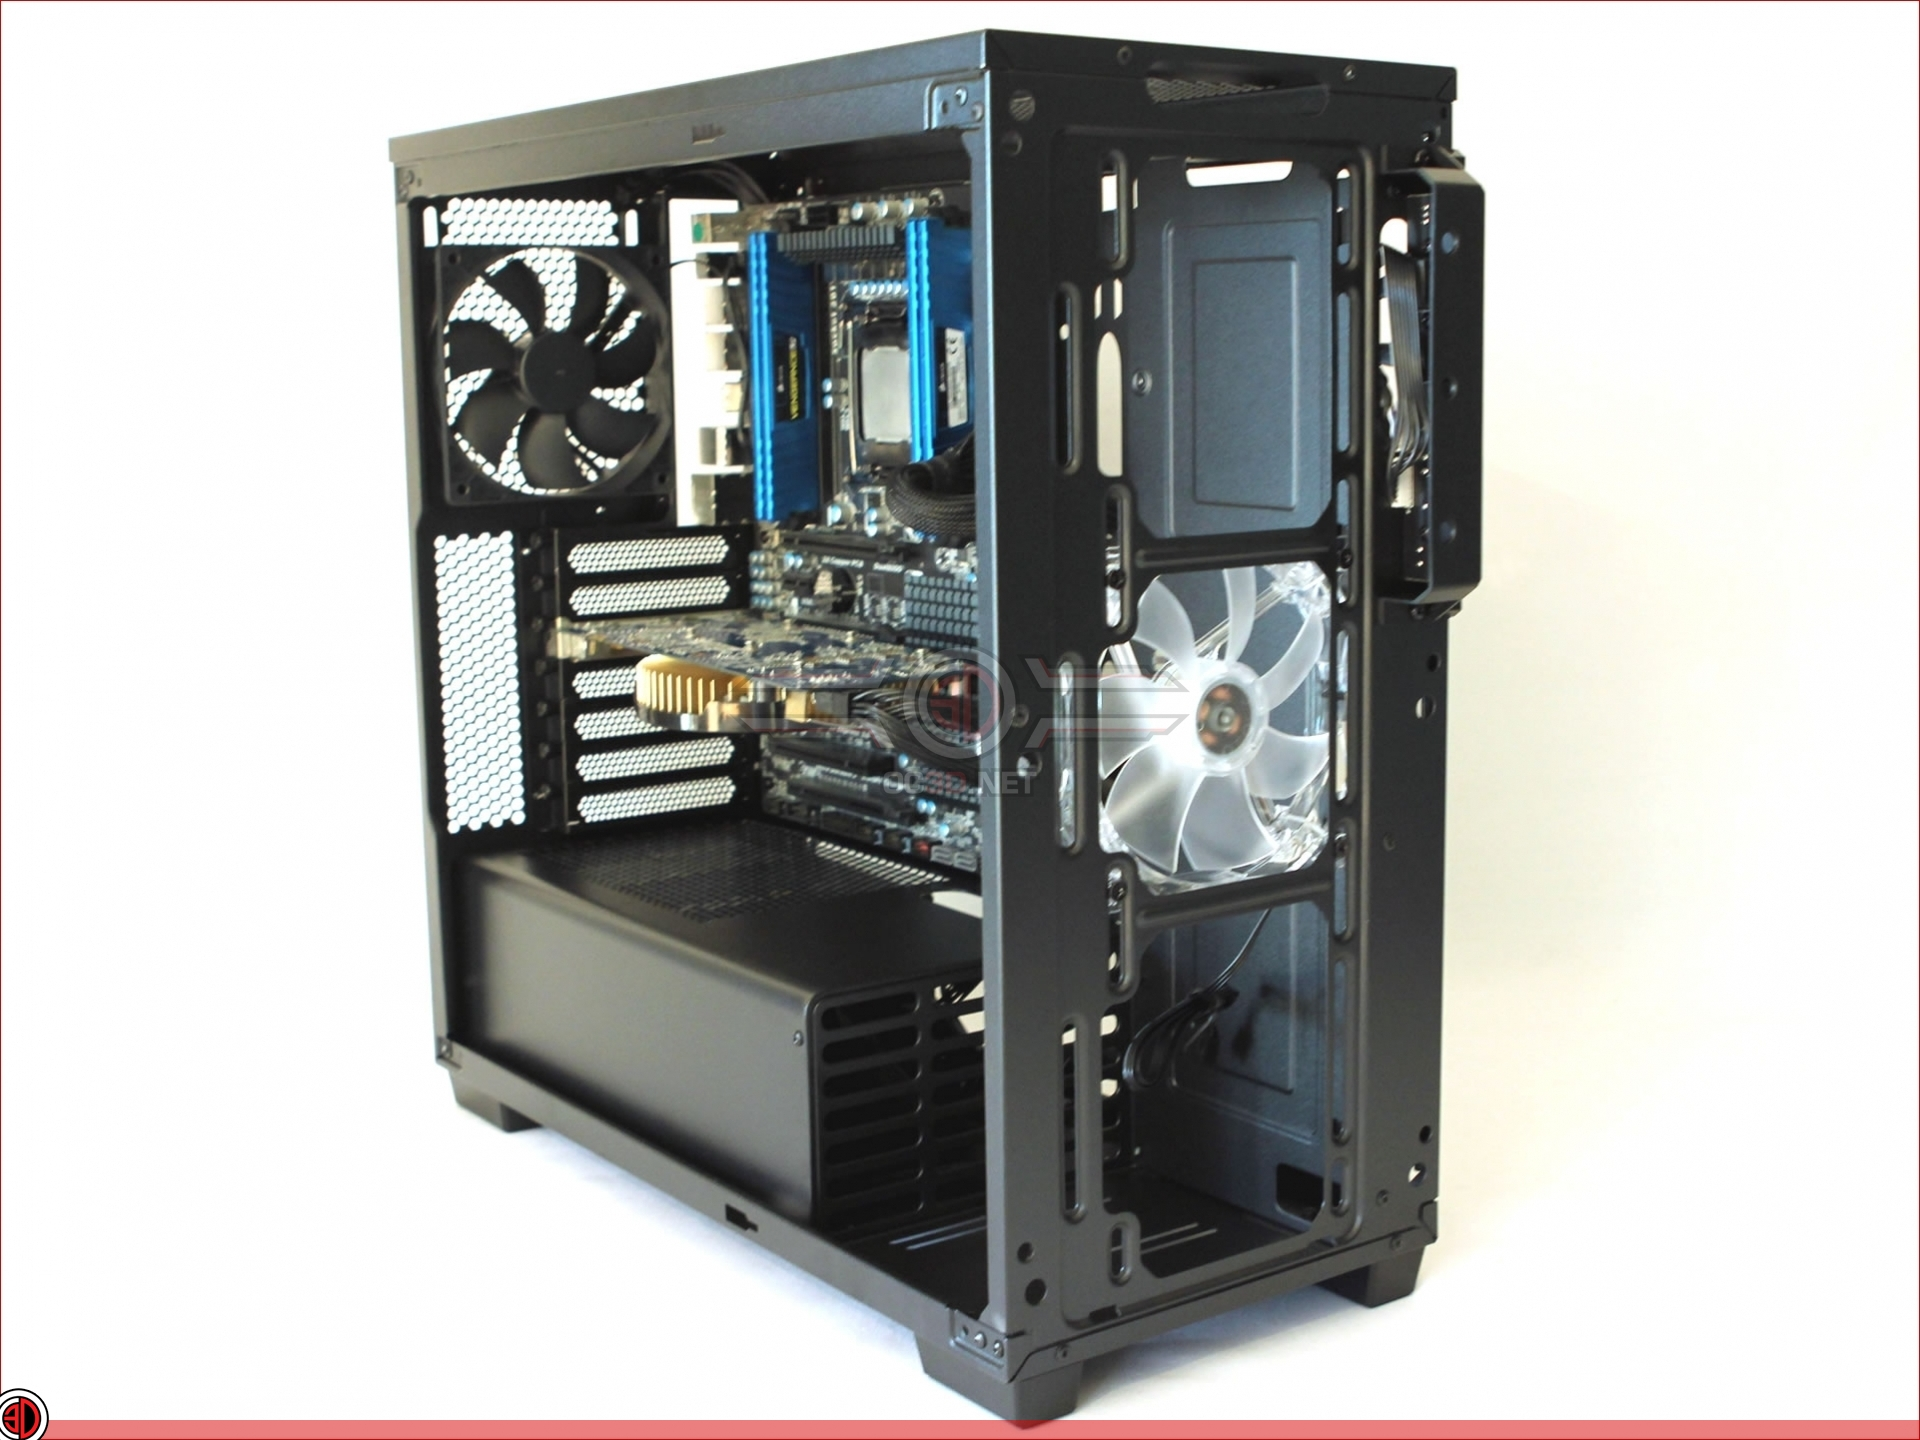 Corsair Carbide 270r Review The Build Cases Amp Cooling